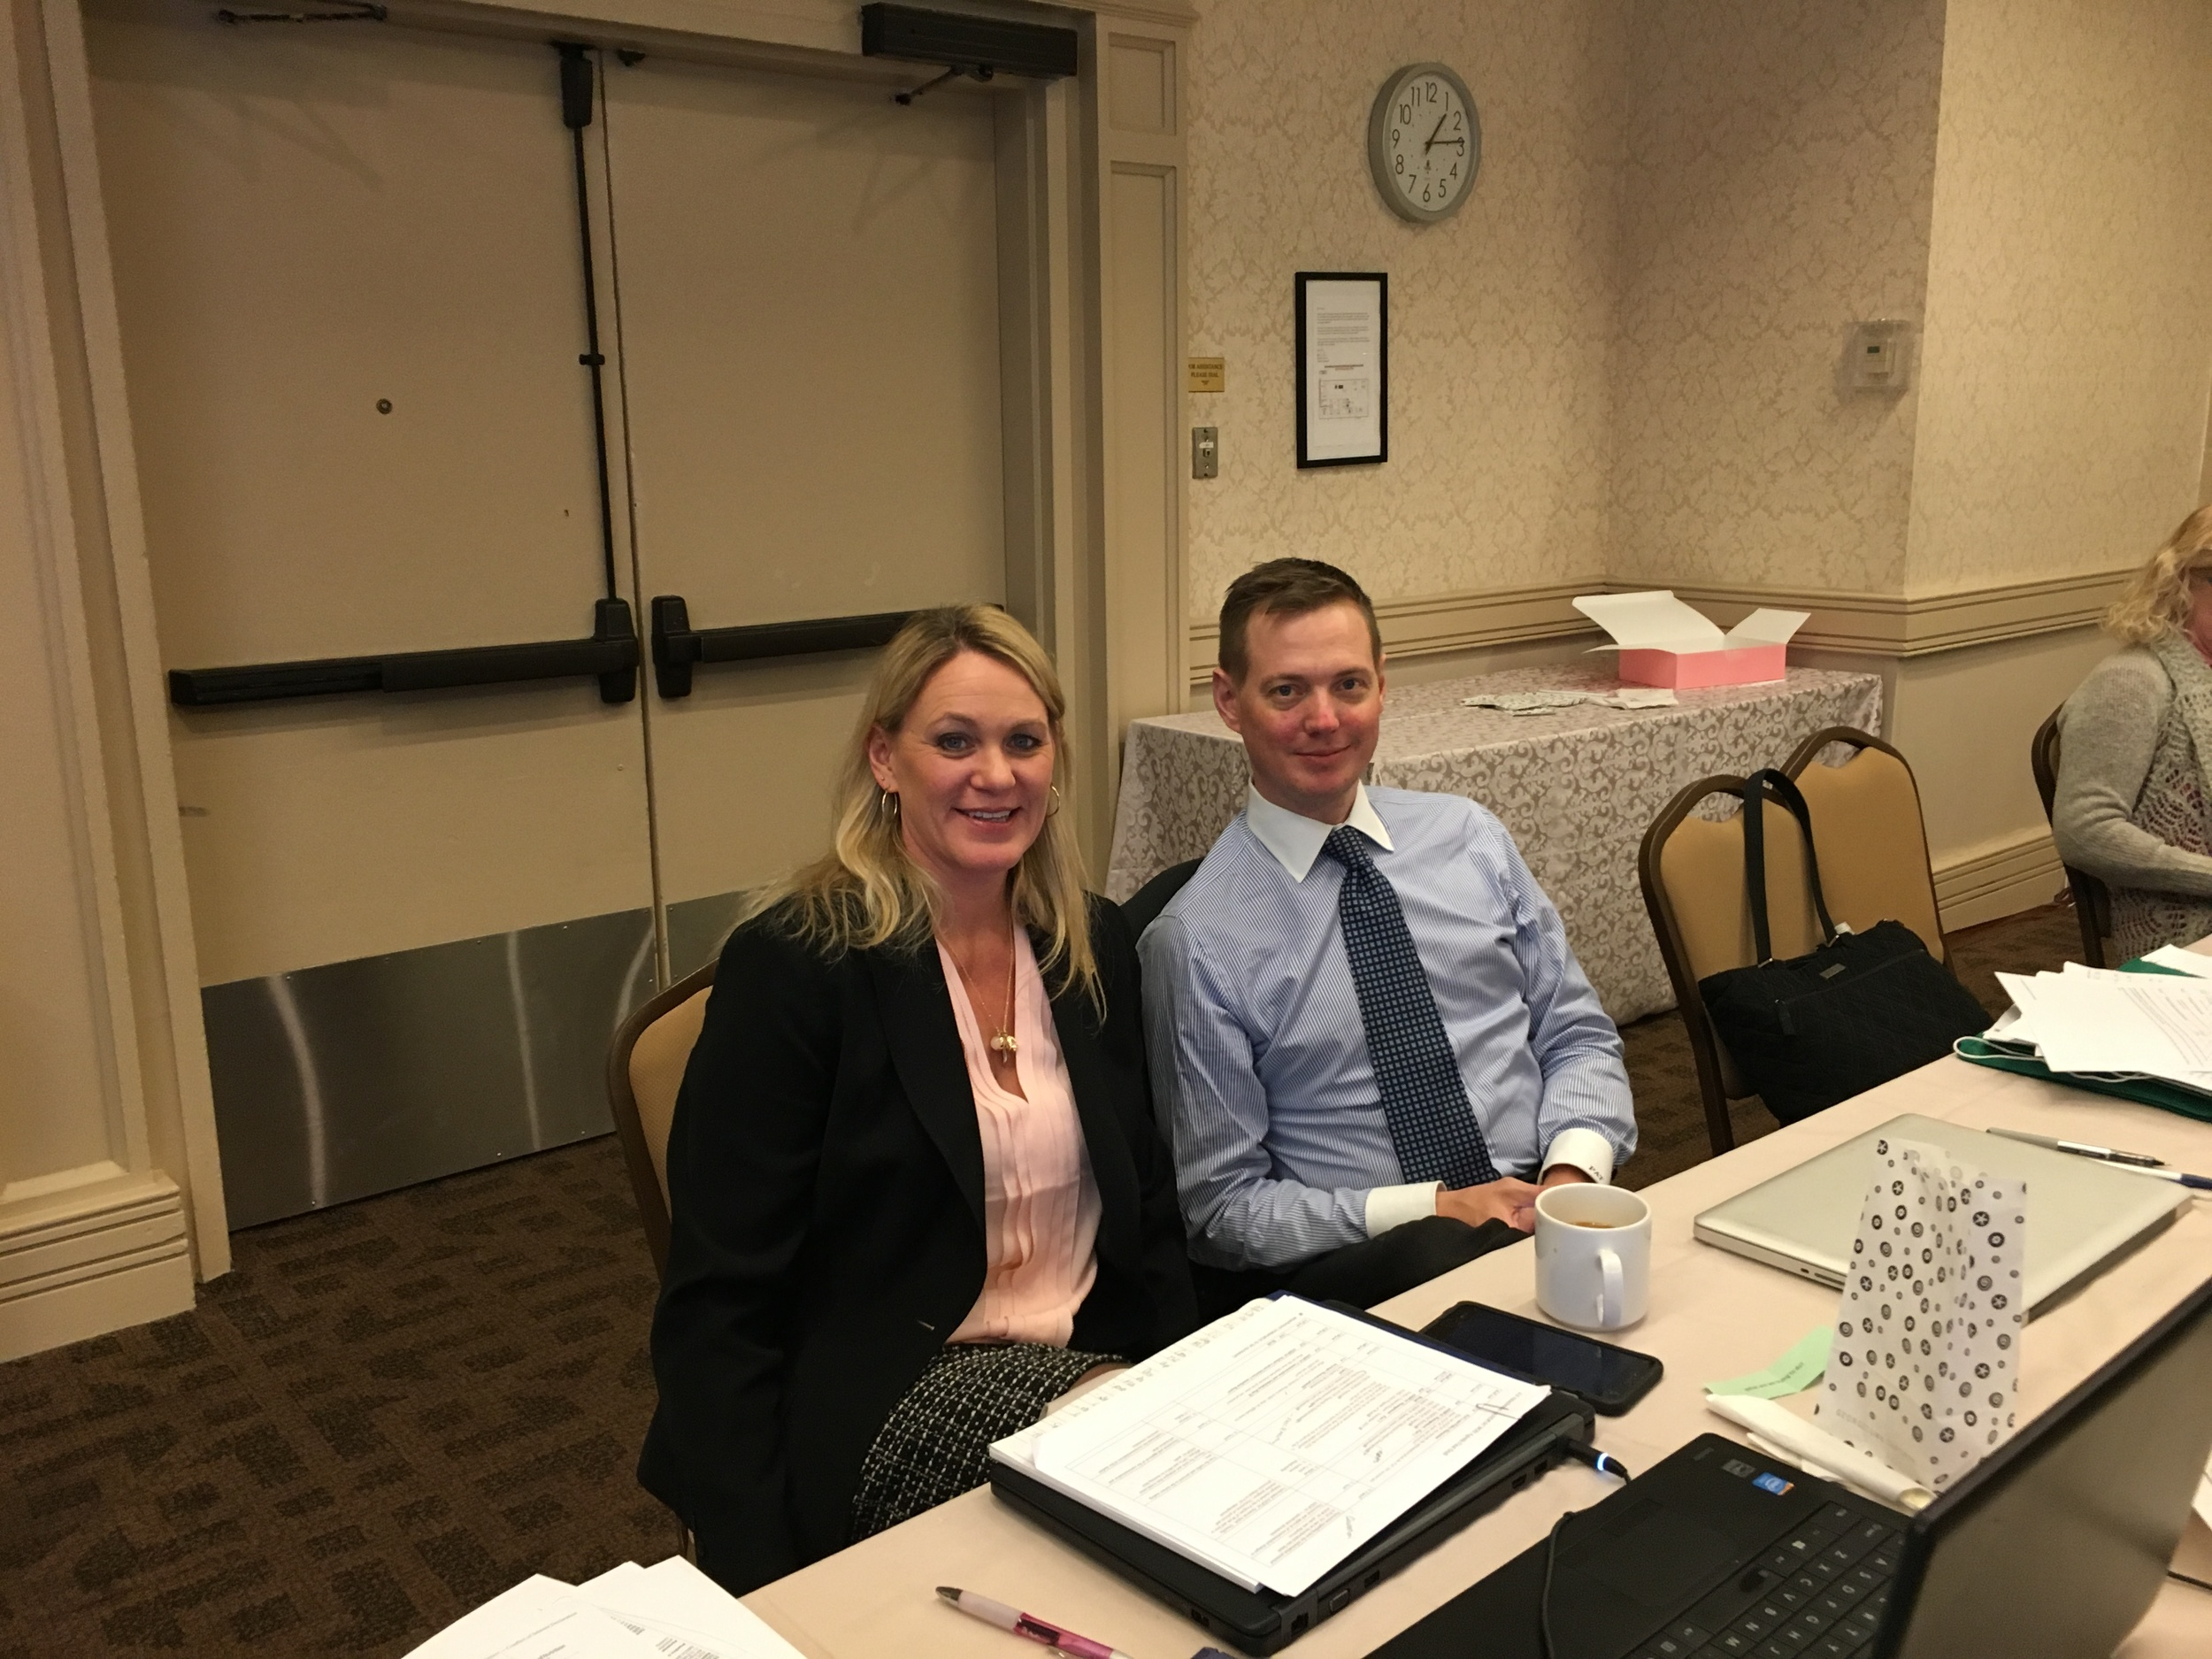 DC Staff Leaders – Jeanne and Pepin